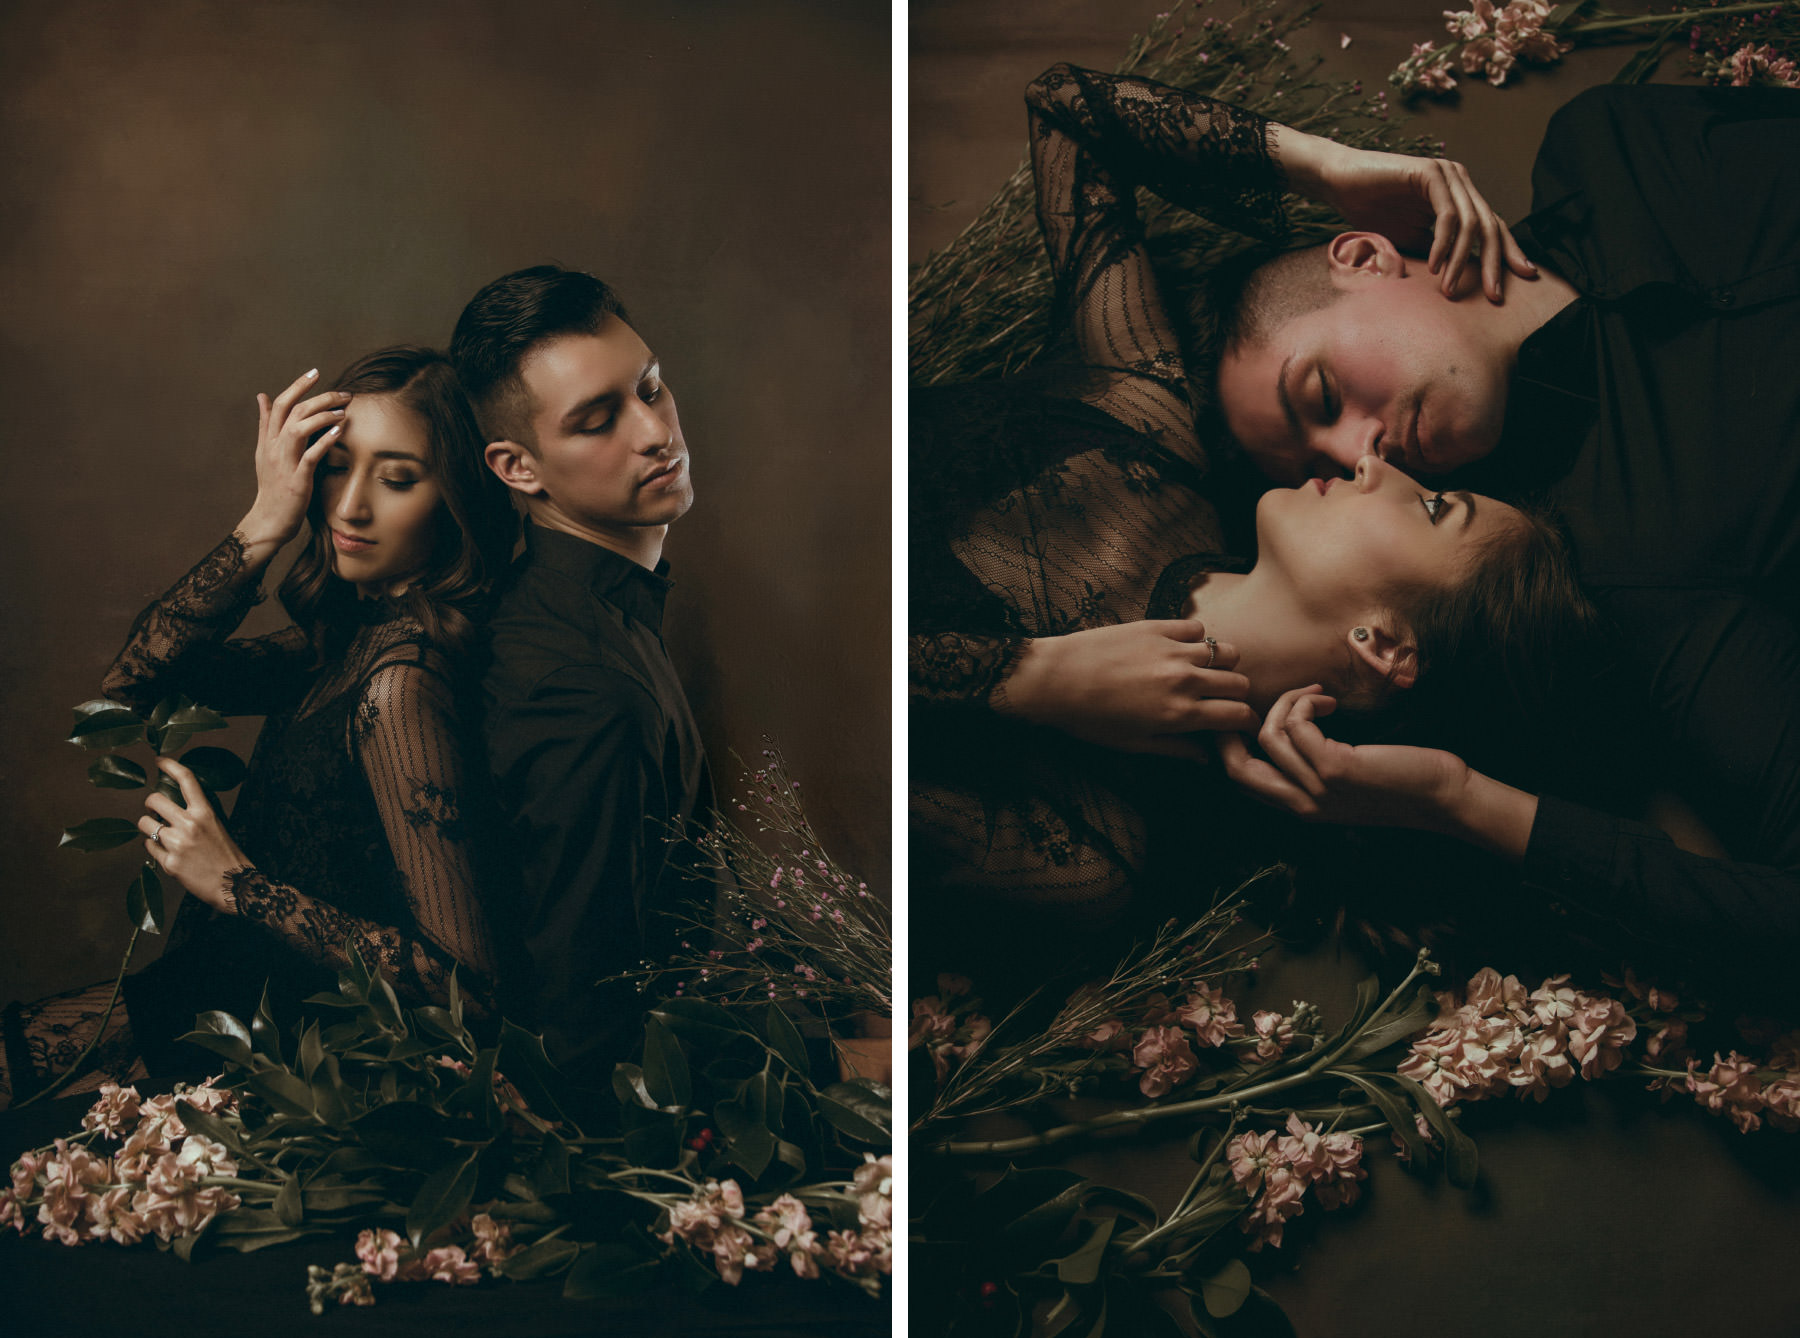 Dark and moody editorial of fashionable couple posing with flowers